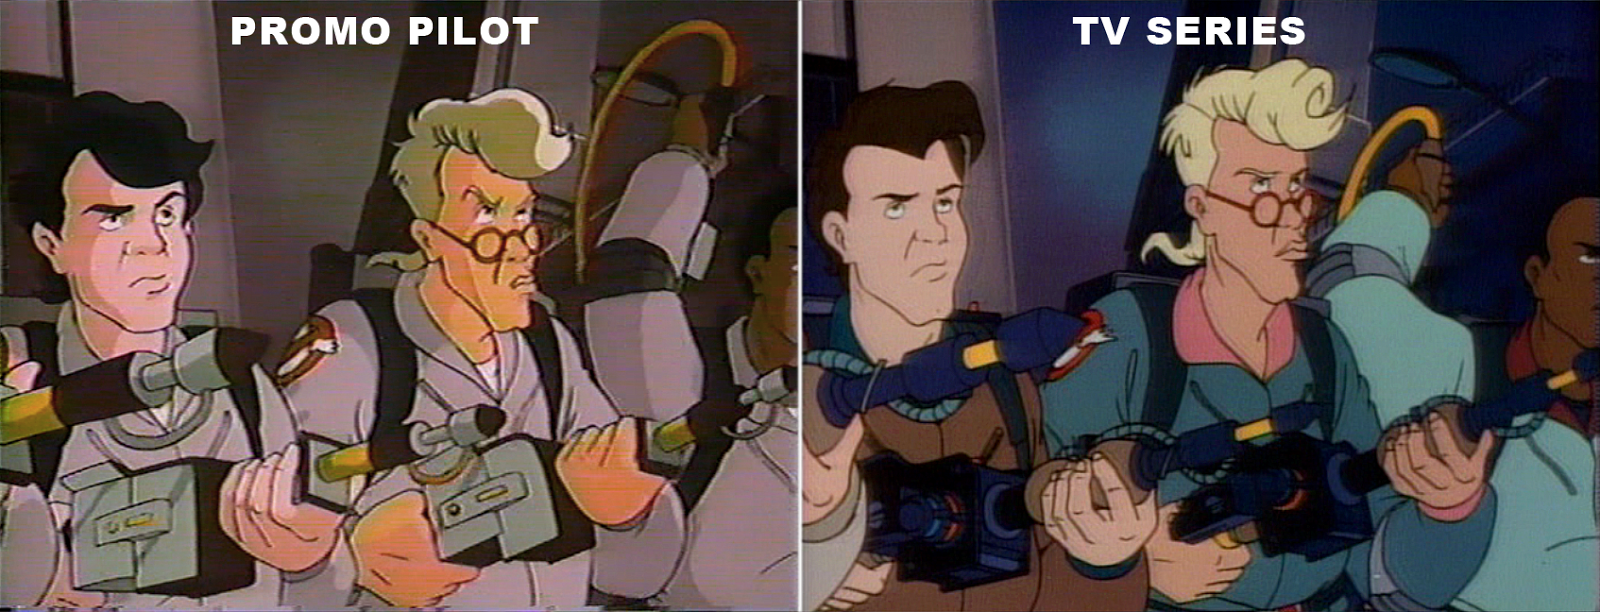 Tokyo Toy Bastard The Real Ghostbusters Promo Pilot